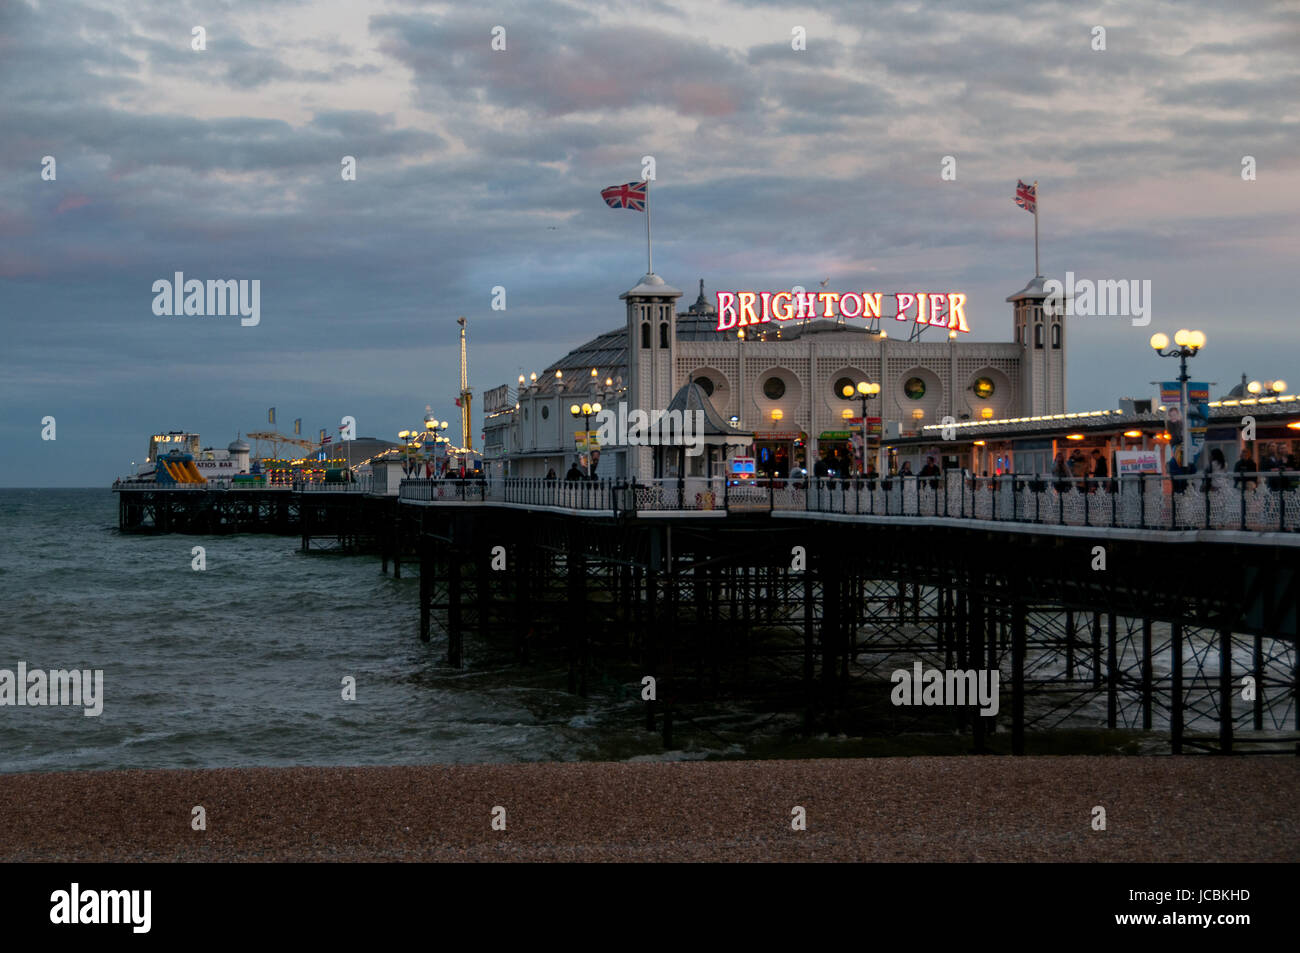 brighton-pier-united-kingdom-JCBKHD.jpg